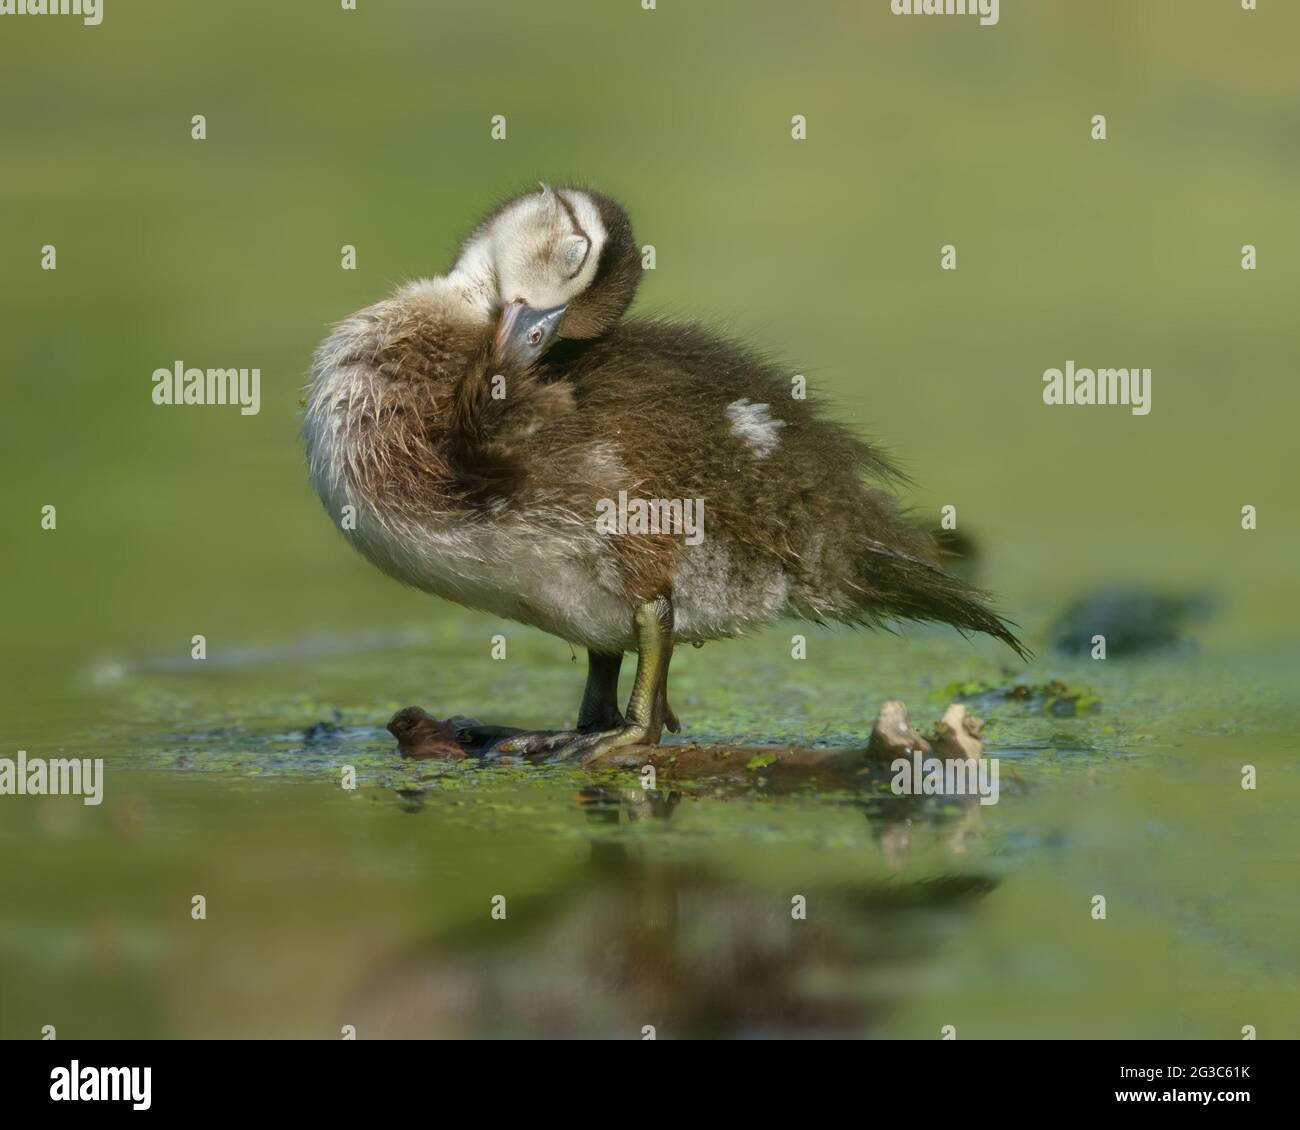 a-wood-duck-duckling-aix-sponsa-preening-in-early-morning-on-a-log-to-enjoy-the-rays-of-the-sun-on-a-side-pond-of-the-rideau-canal-waterways-2G3C61K.jpg